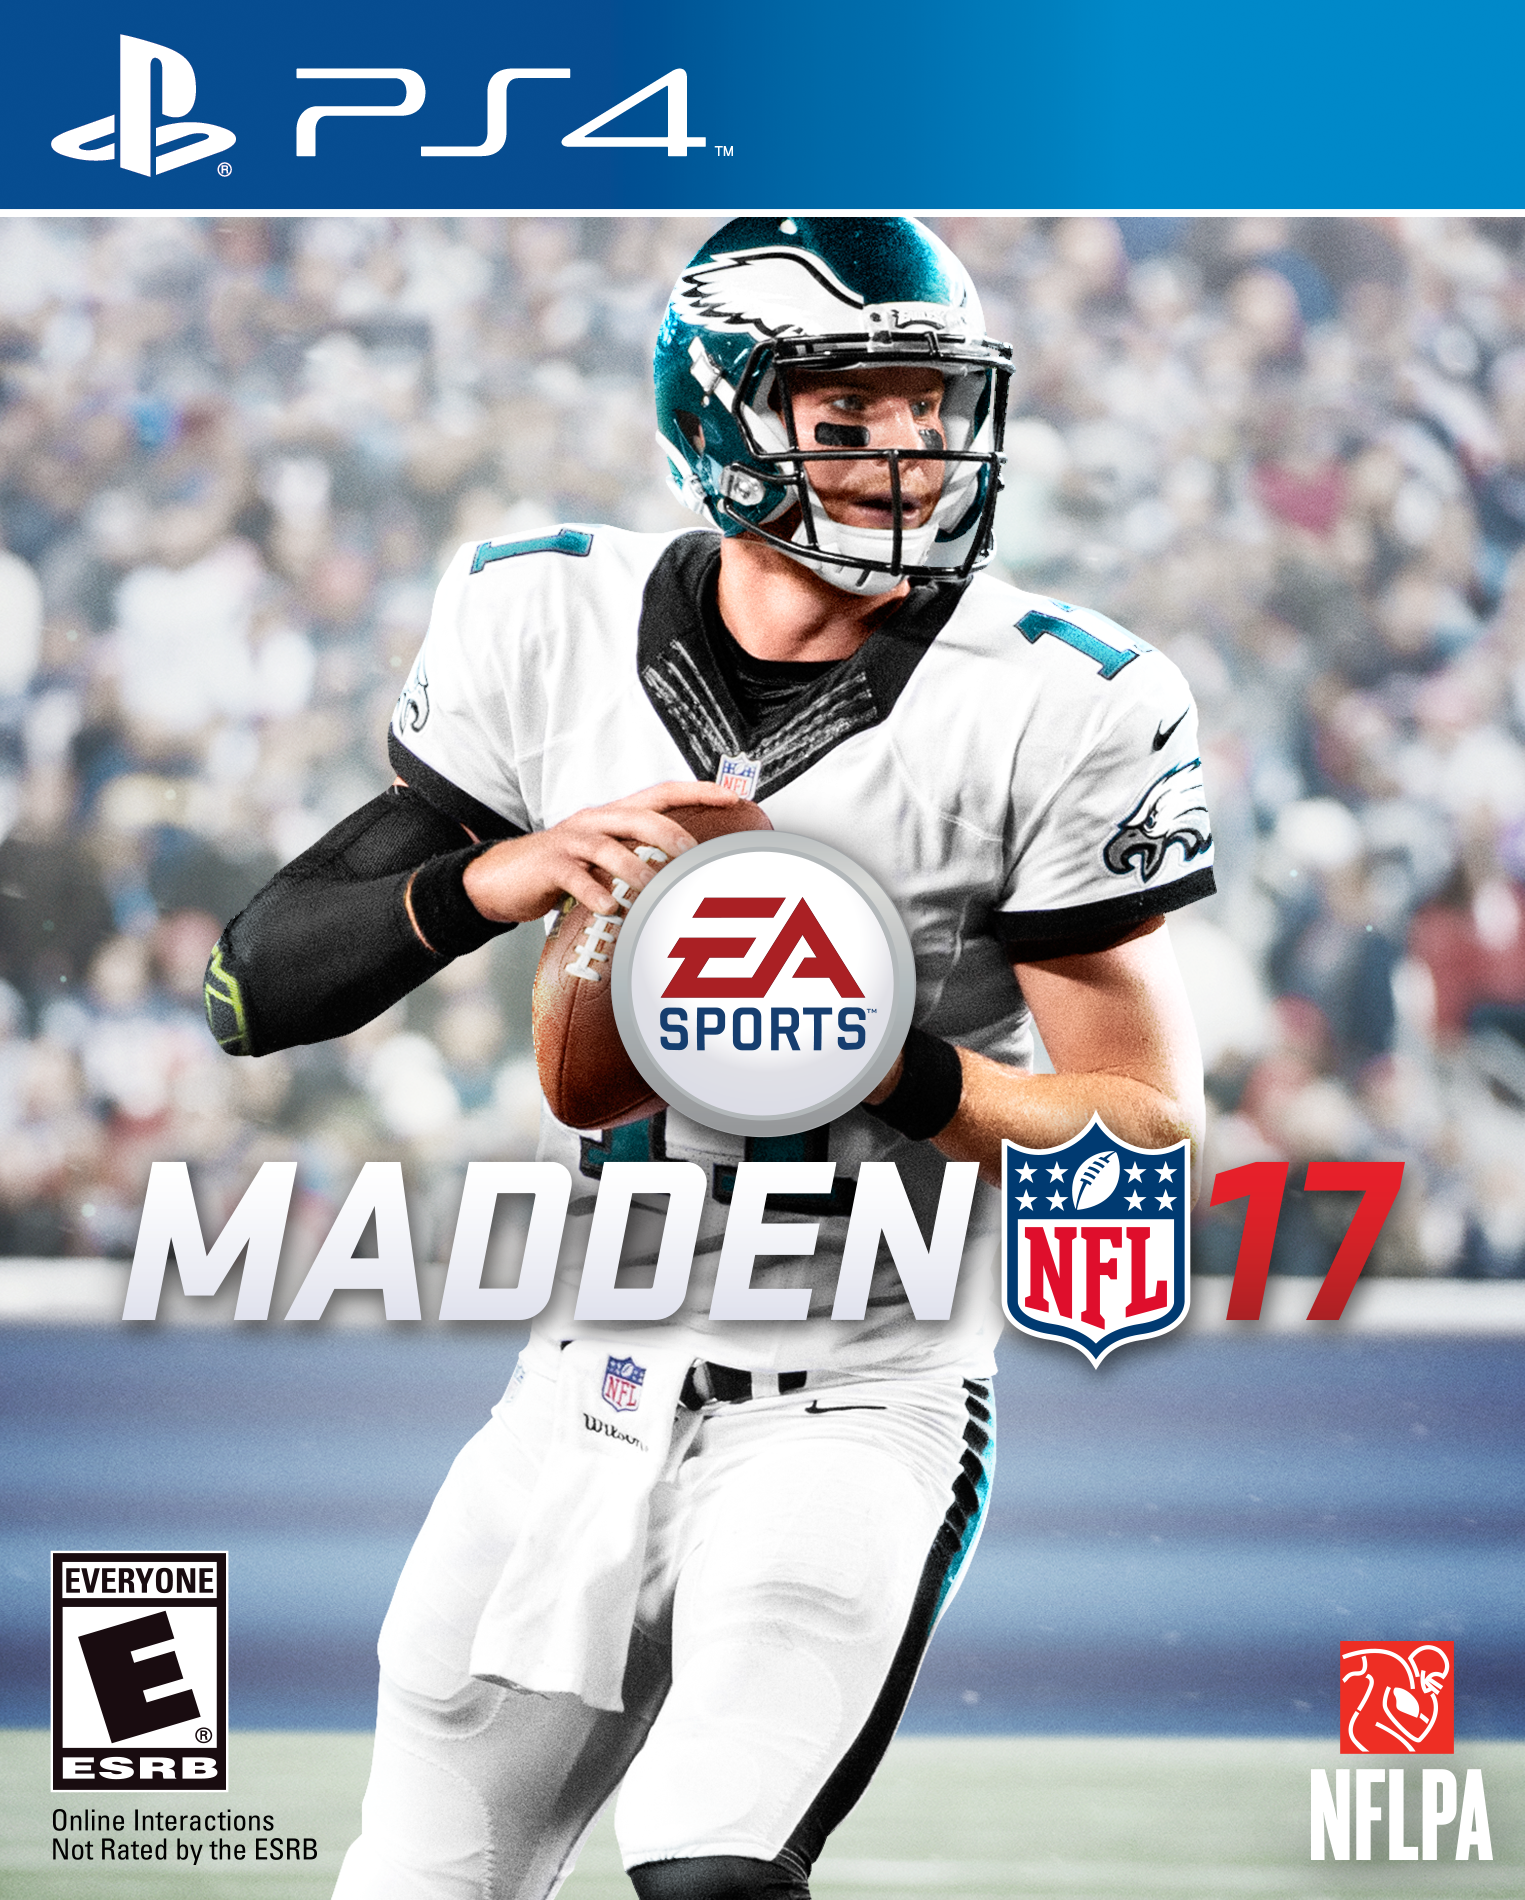 Madden 17 Custom Covers Thread - Page 26 - Operation Sports Forums